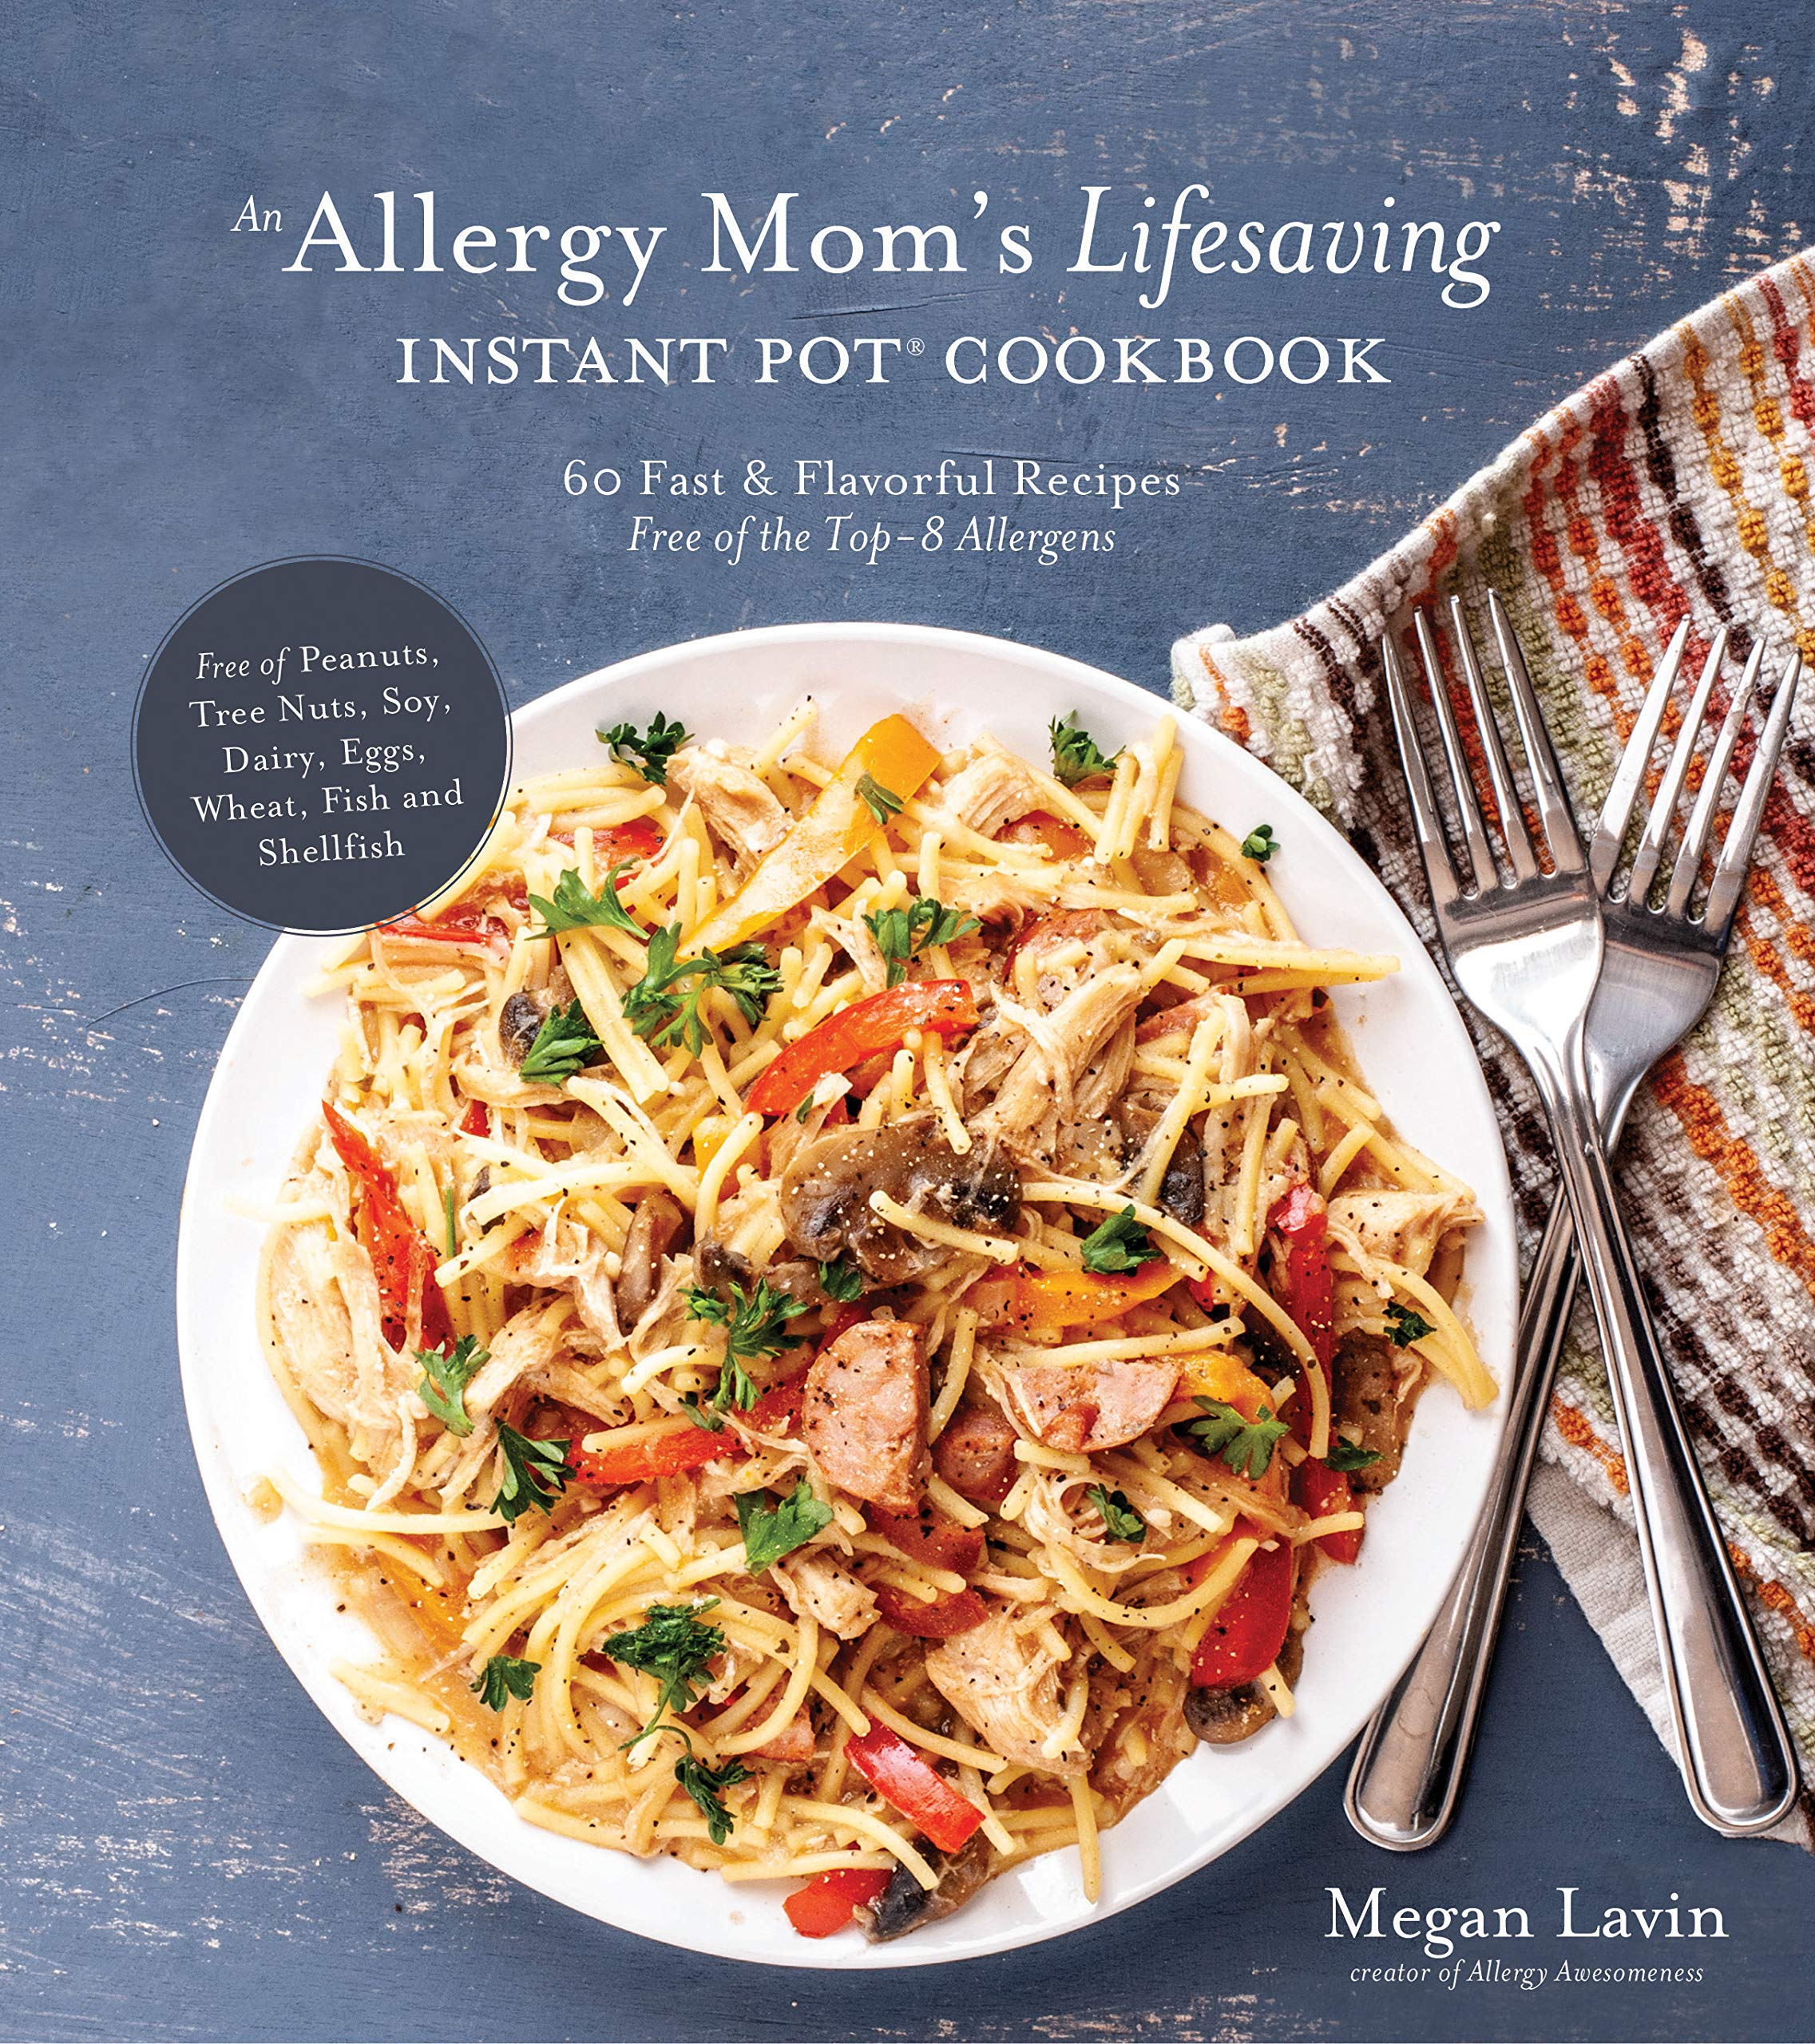 An Allergy Mom's Lifesaving Instant Pot Cookbook: 60 Fast and Flavorful Recipes Free of the Top 8 Allergens by Page Street Publishing